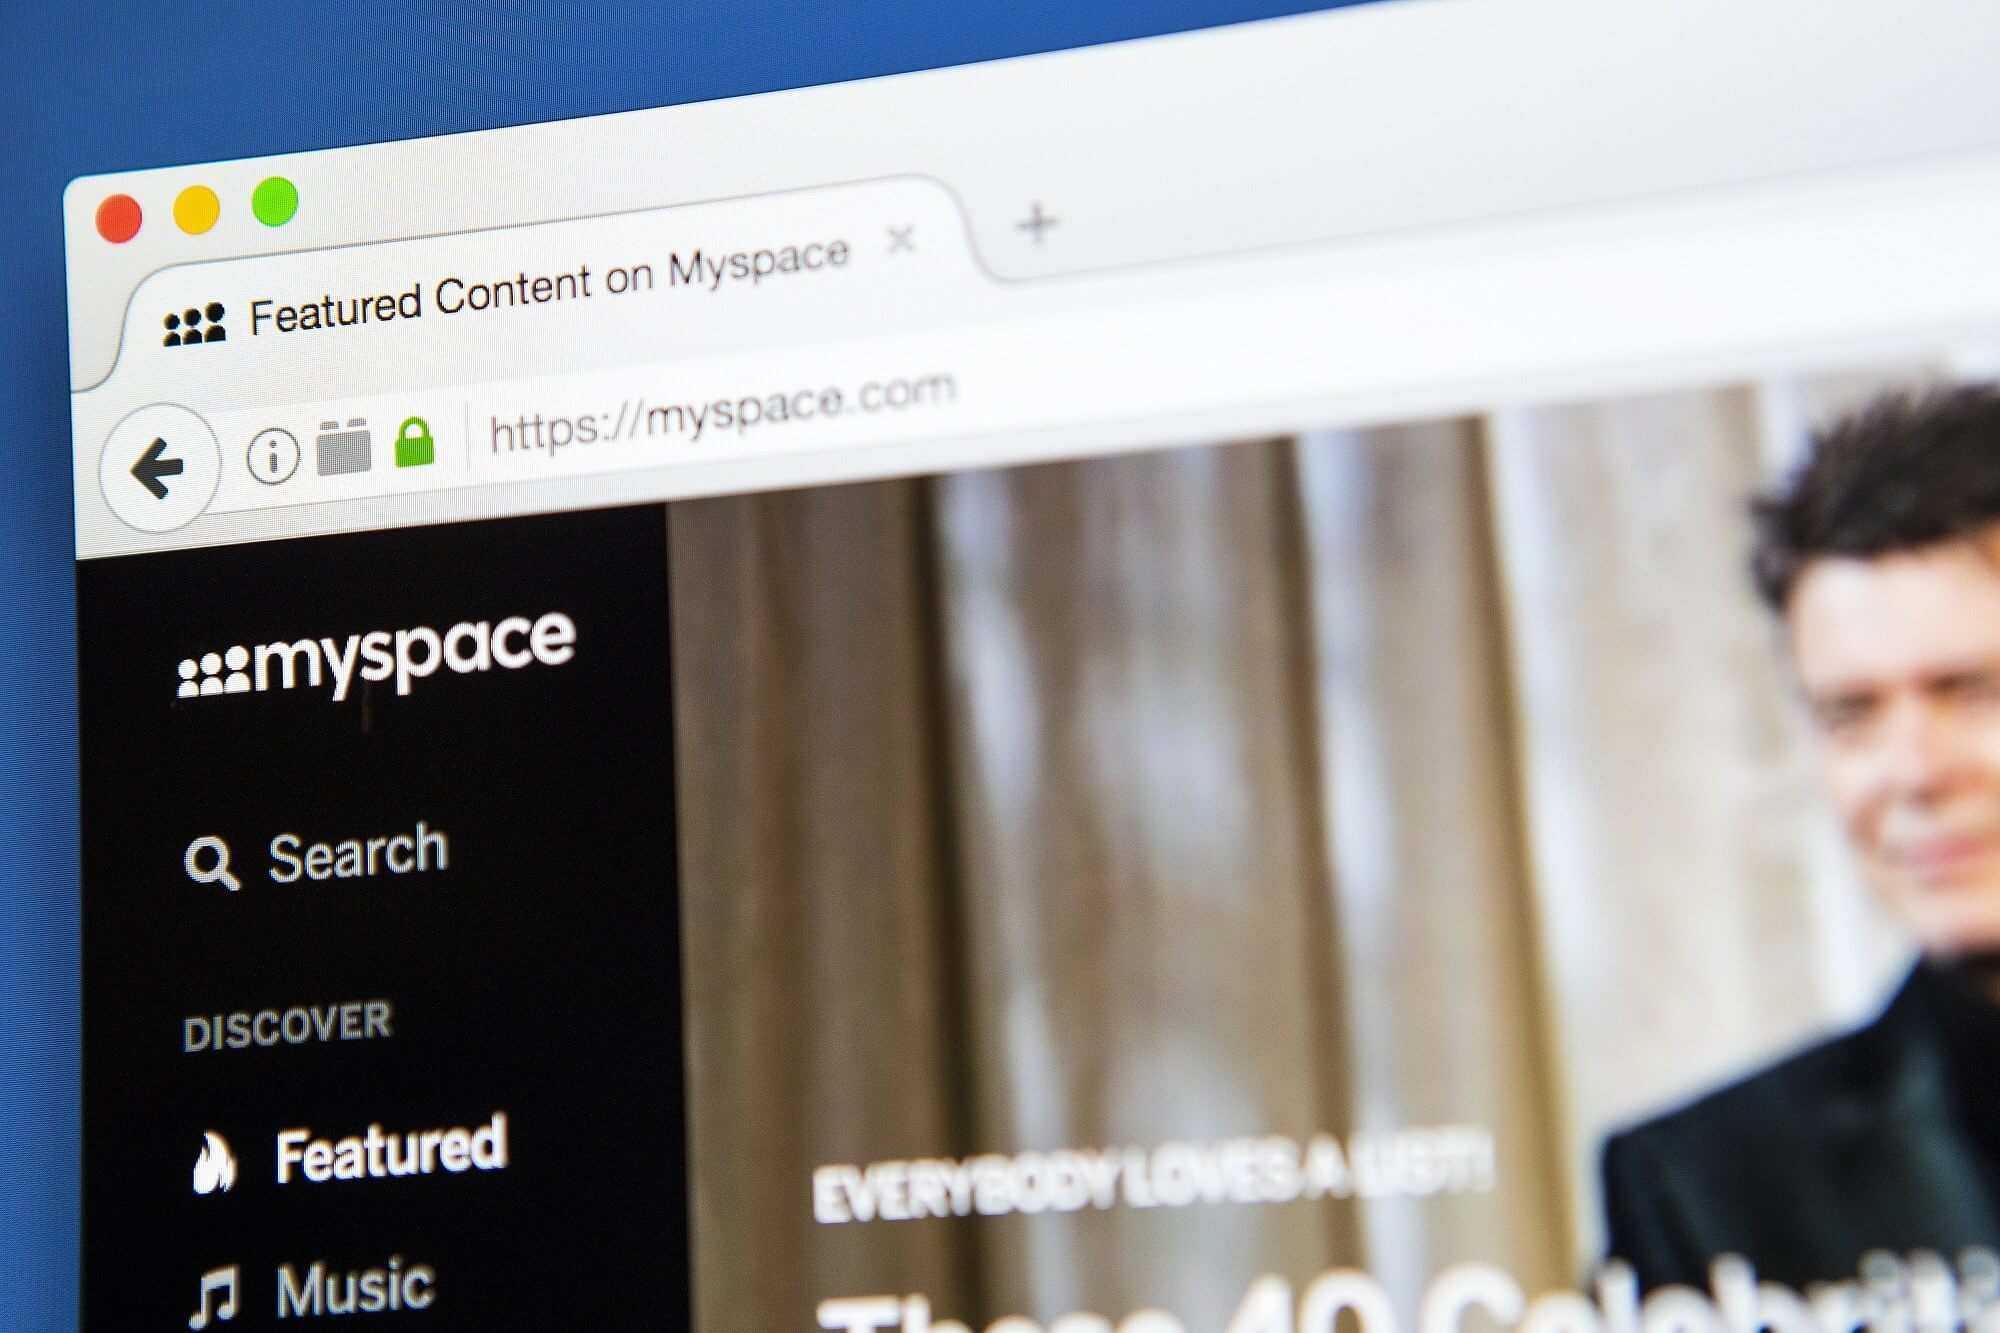 Myspace admits losing music uploaded to site from 2003 to 2015